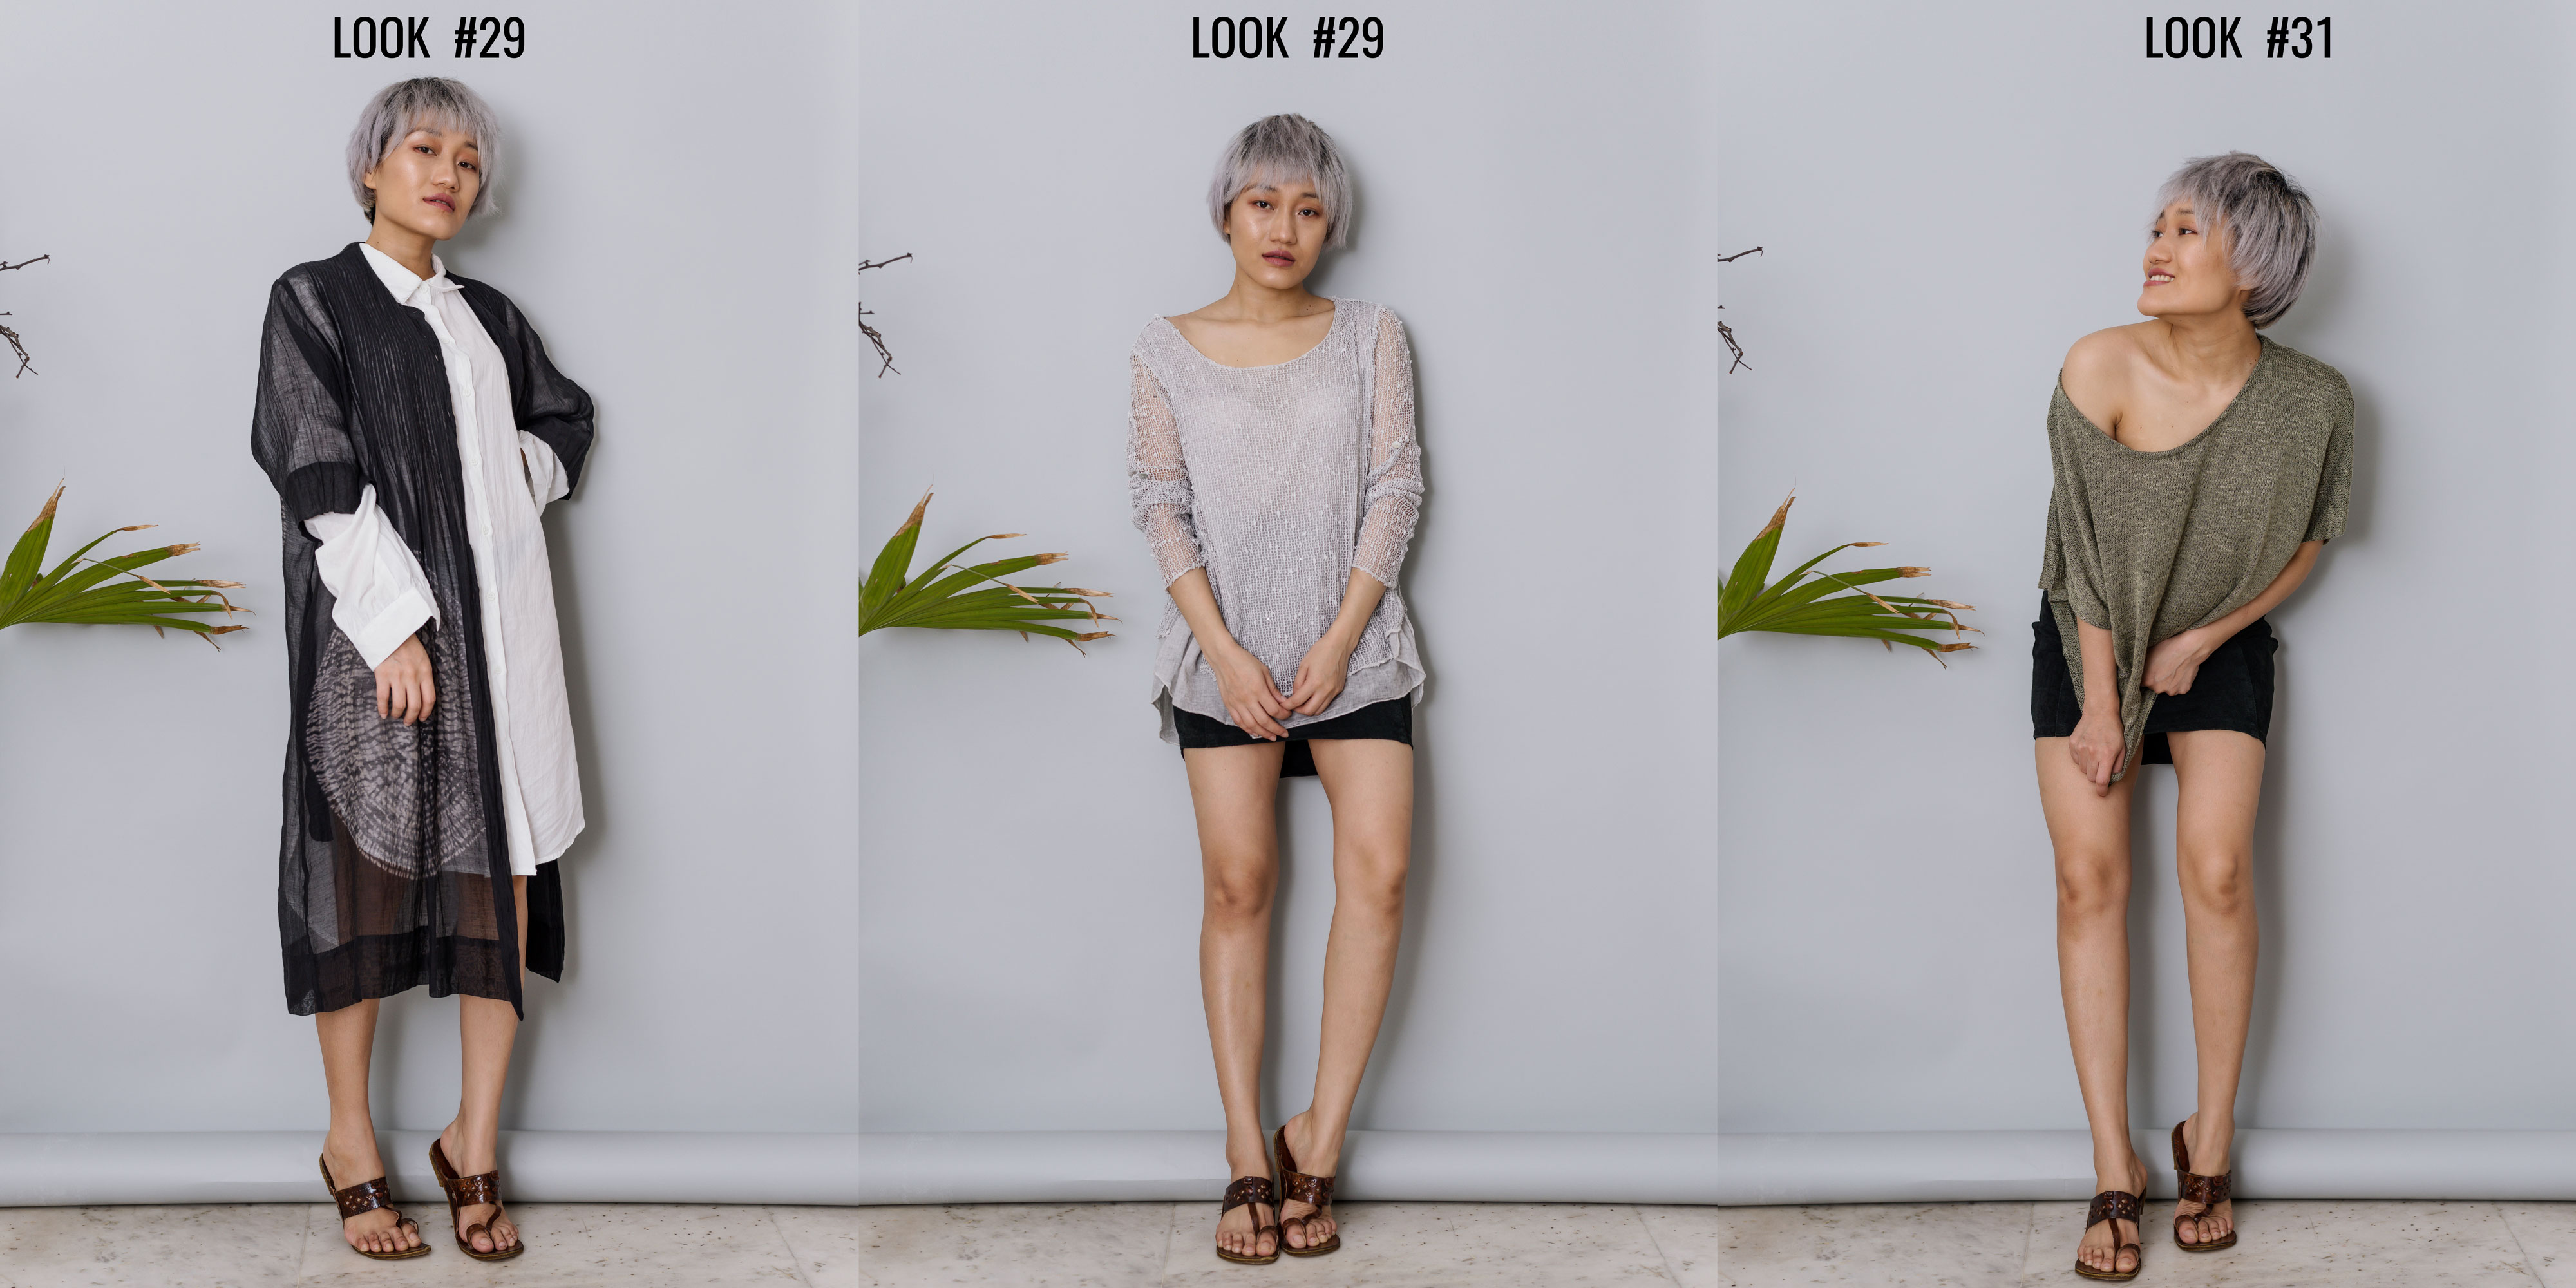 Aien-Jamir-Fashion-&-I-31-Looks-29,30&31-